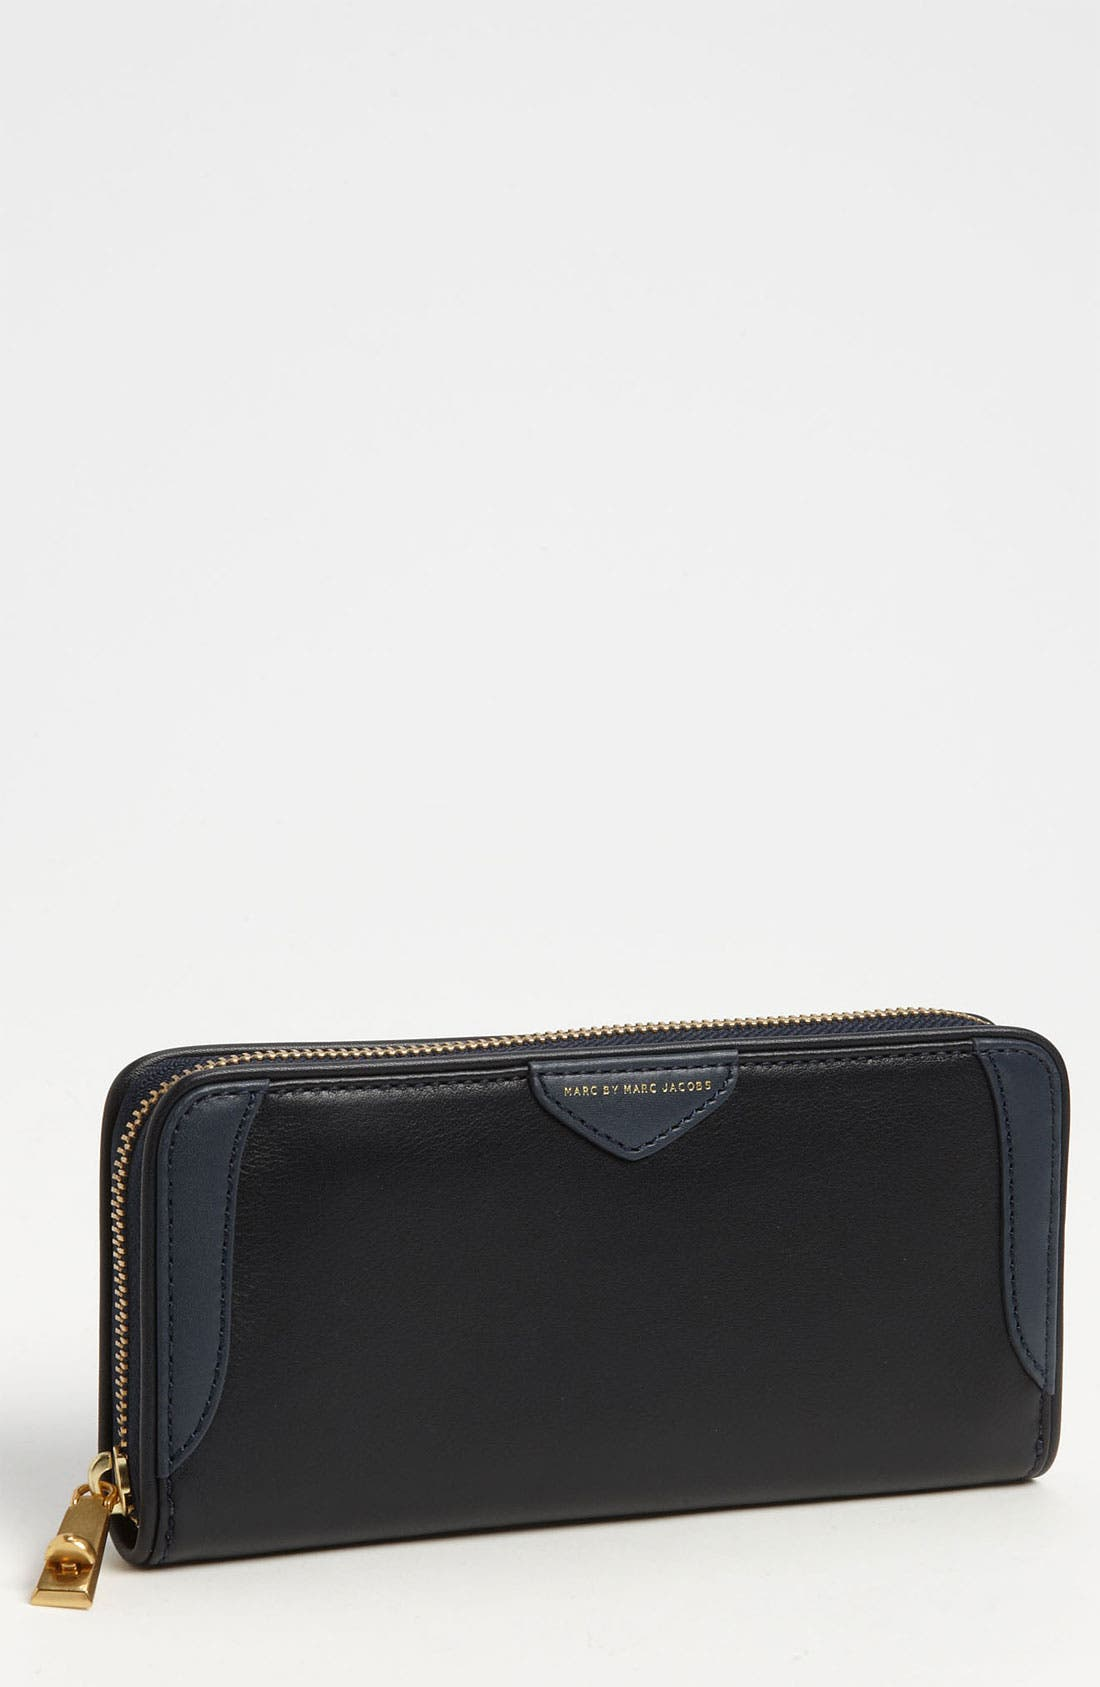 Main Image - MARC BY MARC JACOBS 'The Zip Locker' Wallet